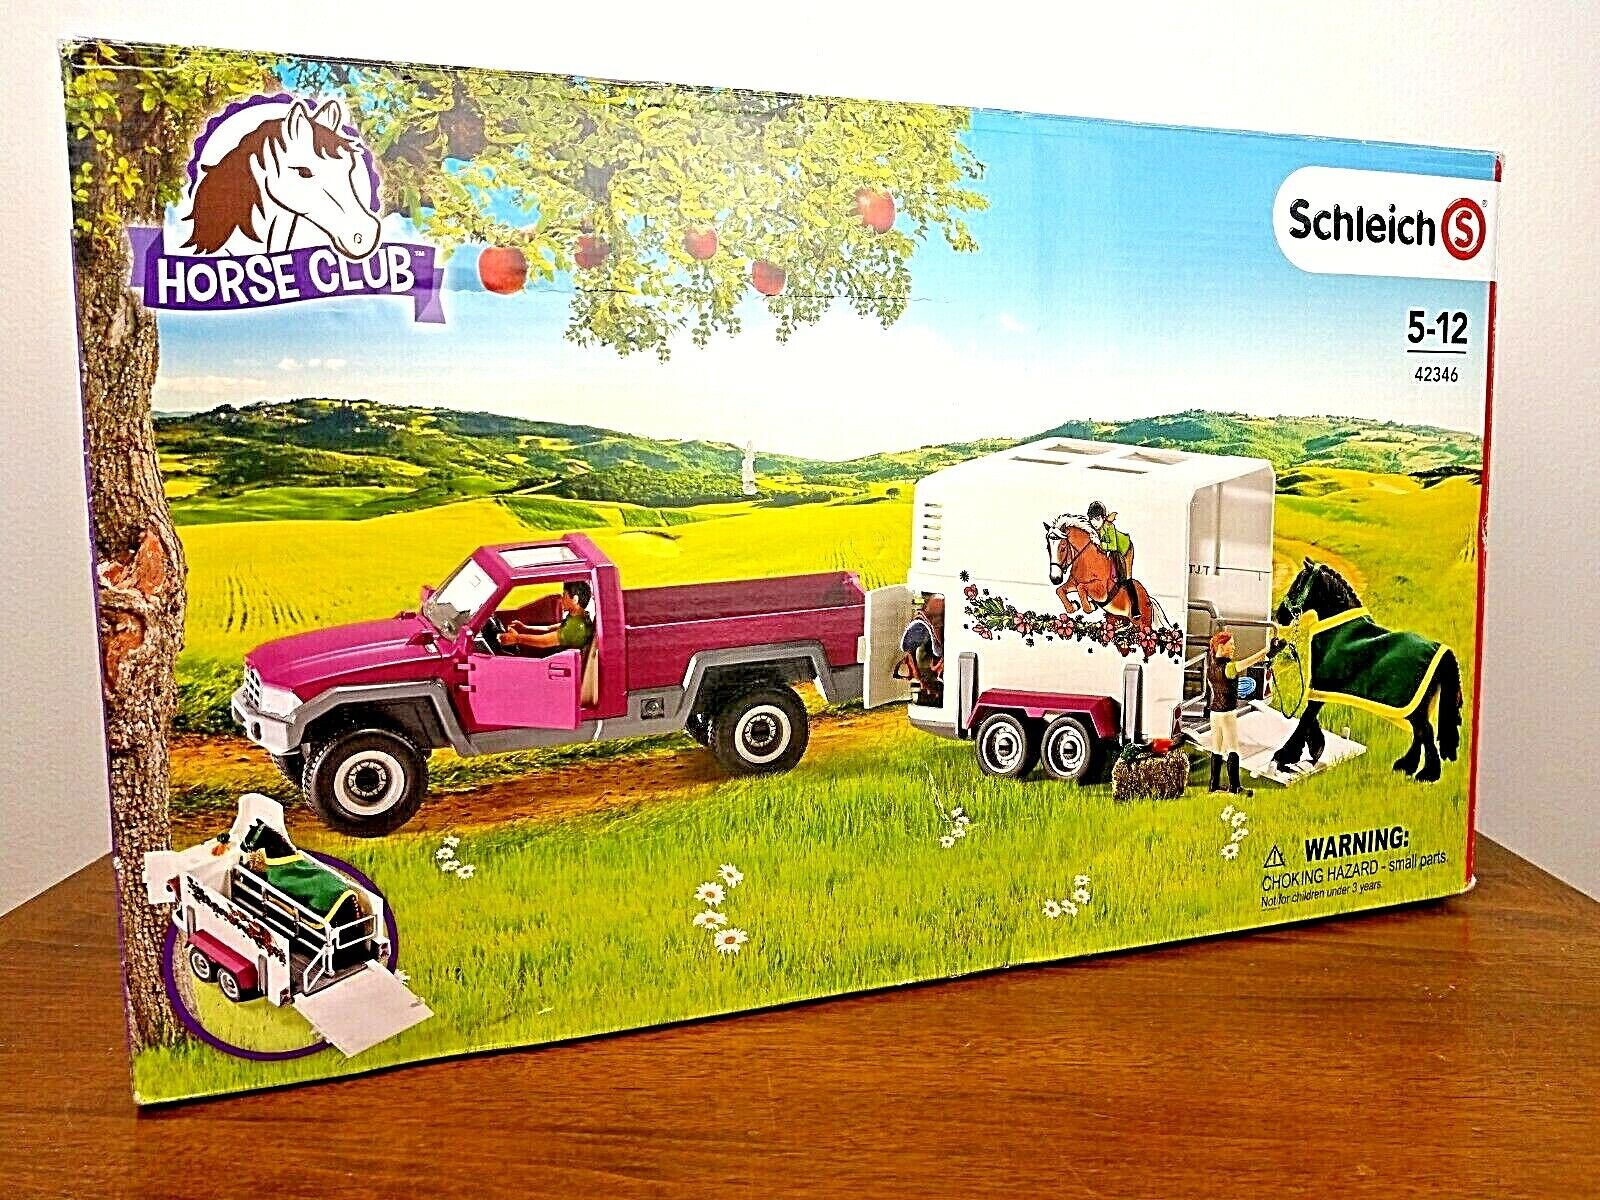 Schleich Pick up with Horse Box Action Figure NEW DAMAGED BOX